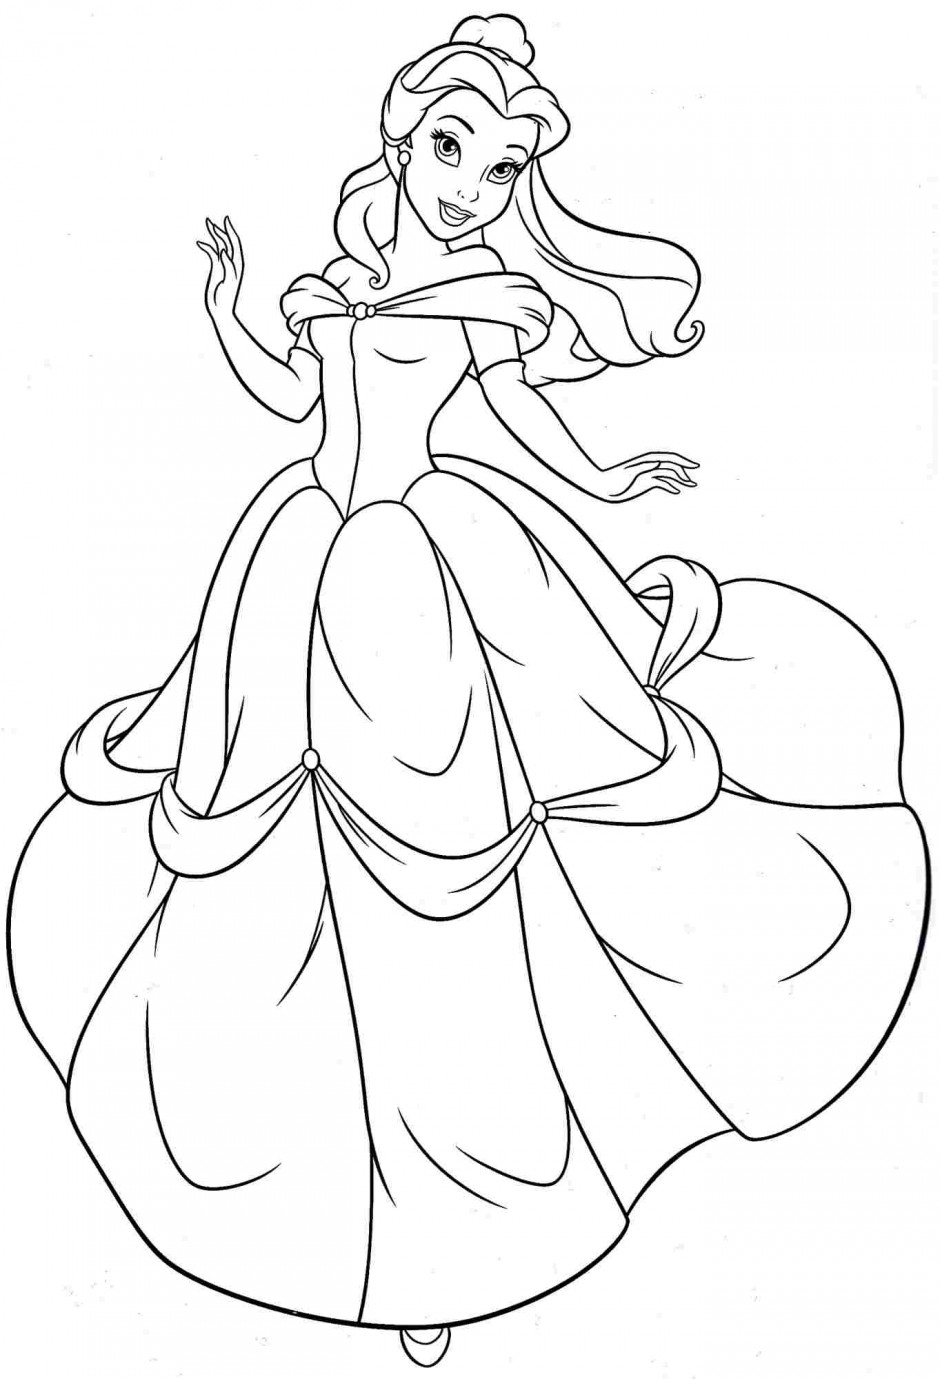 940x1379 Princess Belle Coloring Pages To Print Preschool For Pretty Draw